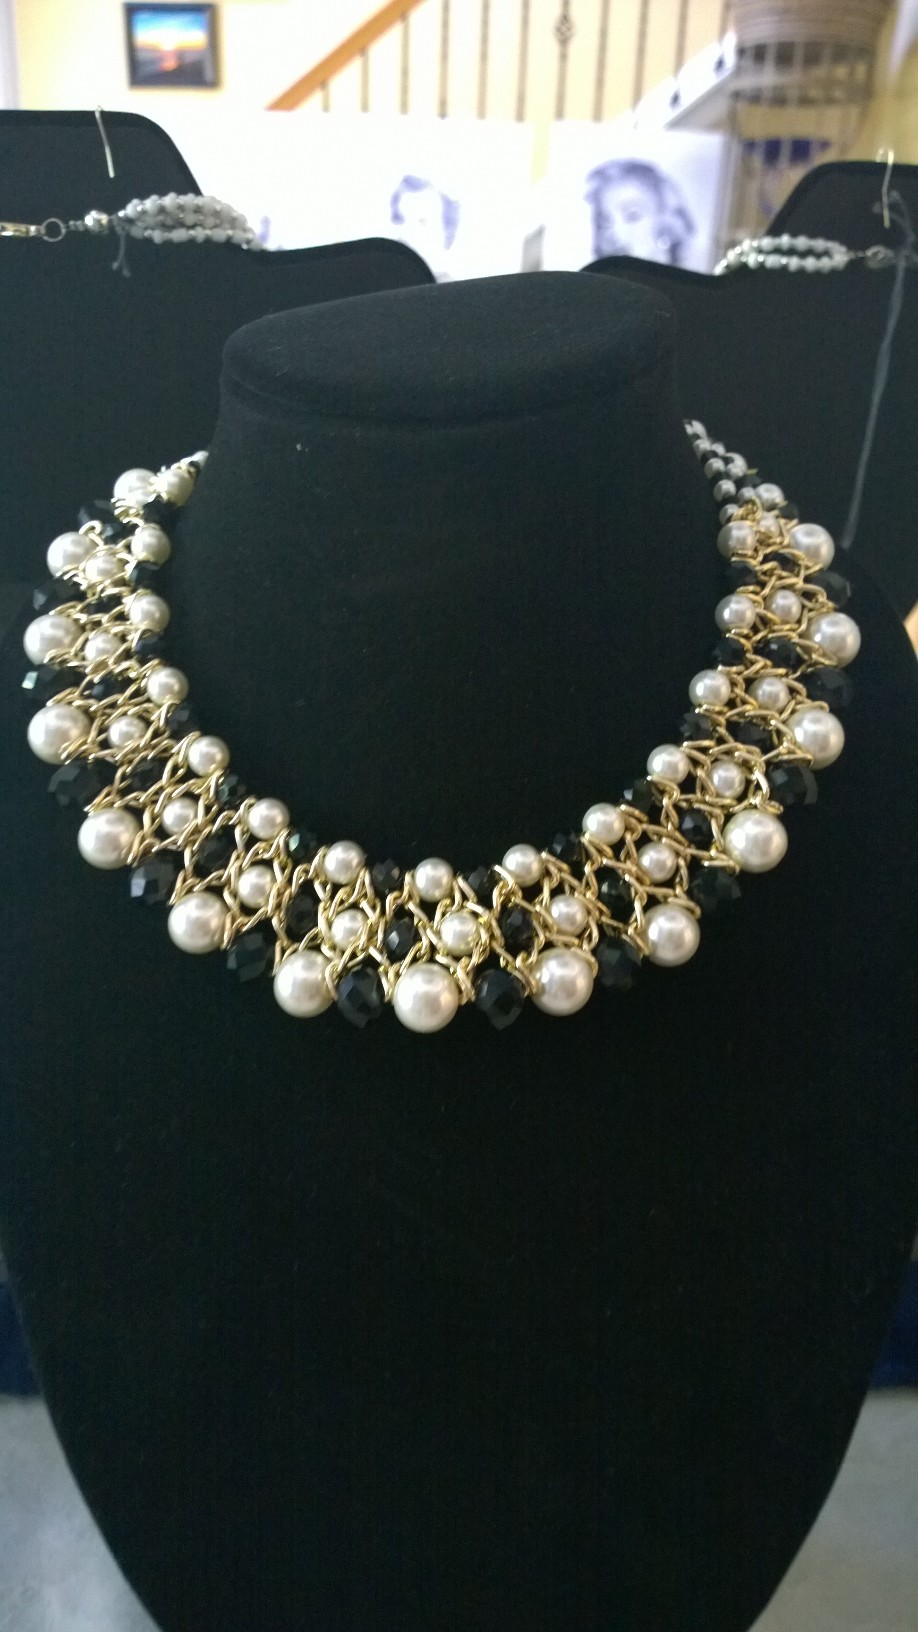 White Pearls and Black Crystals Necklace 0904PSN